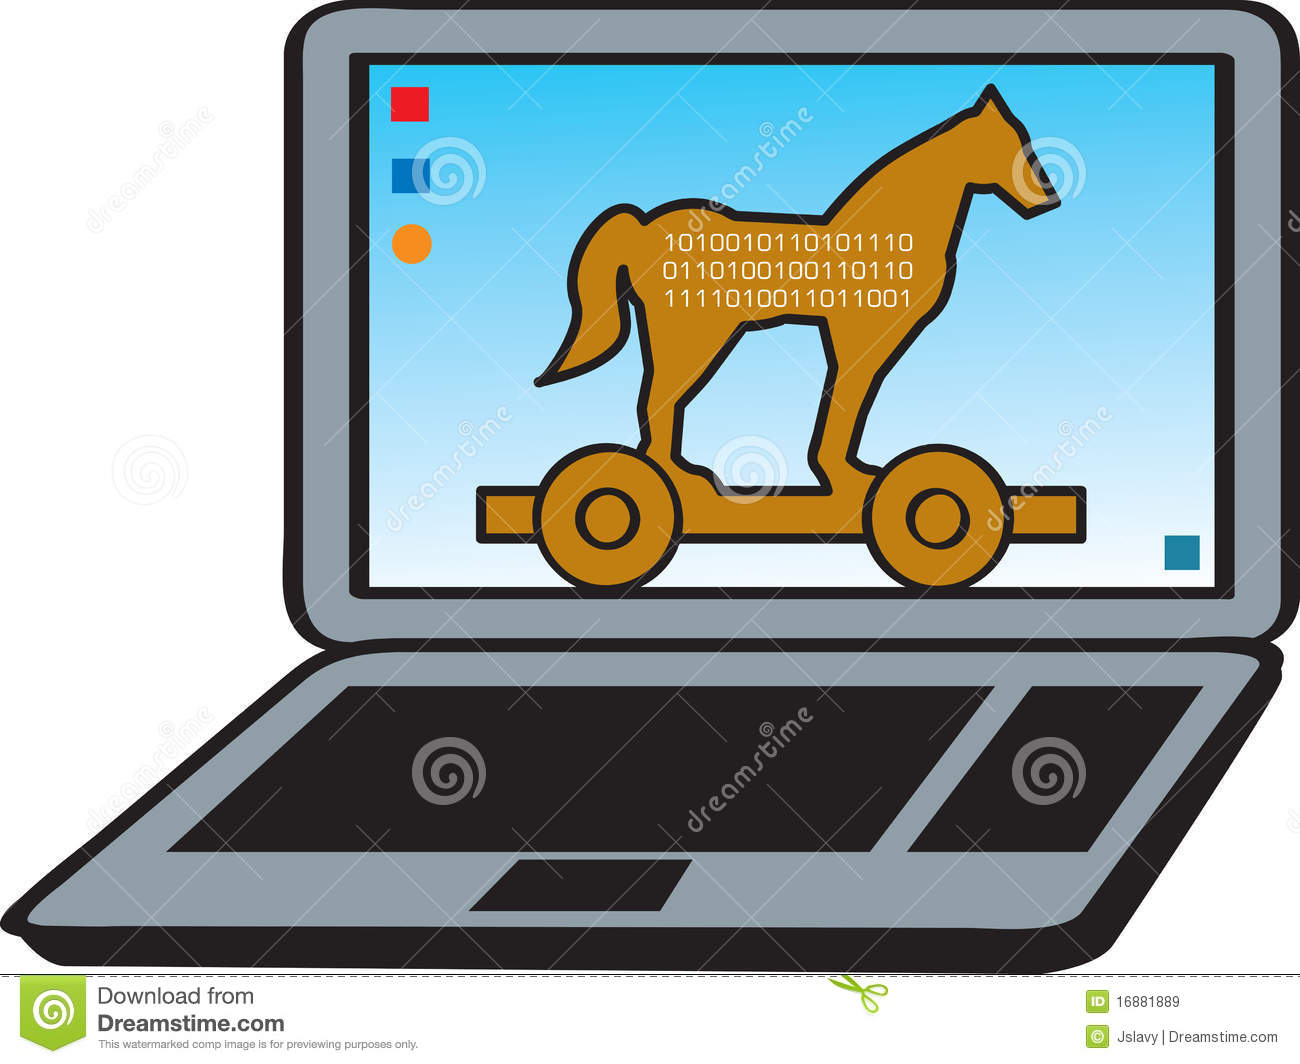 Trojan Horse Royalty Free Stock Images - Image: 16881889